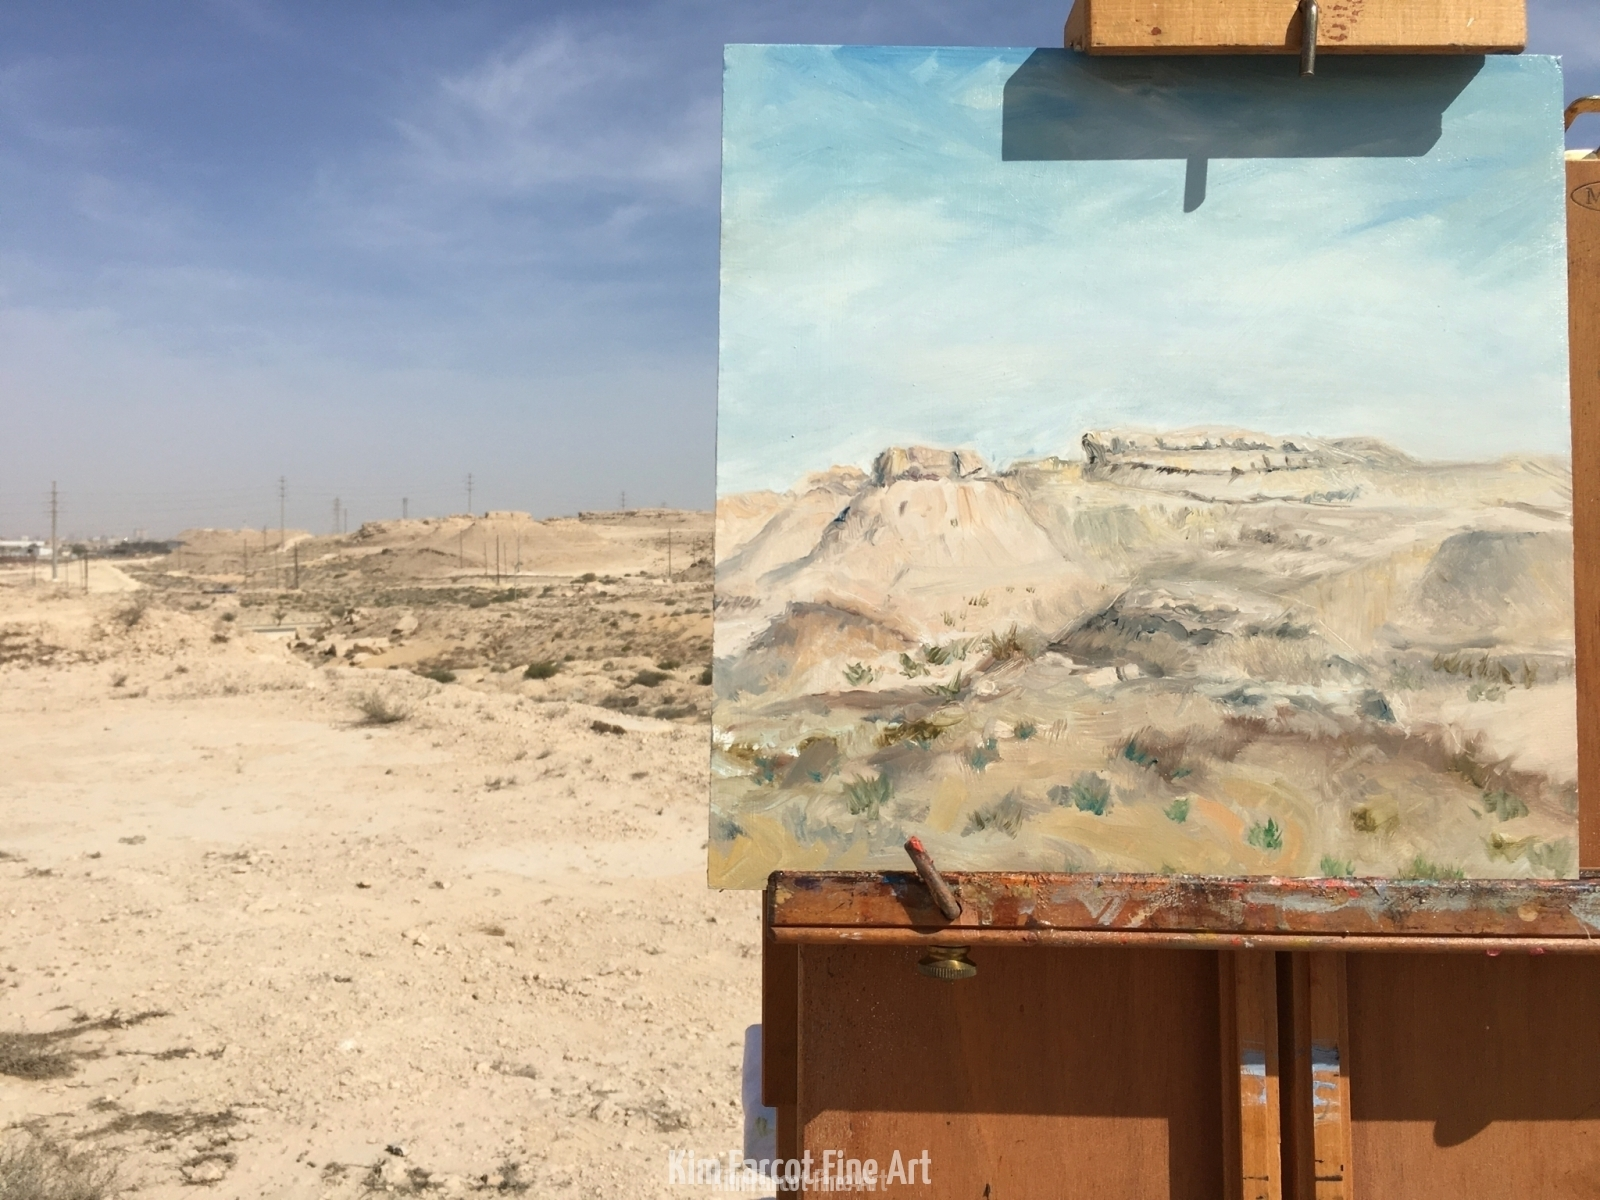 Plein Air 2, private collection, Saudi Arabia